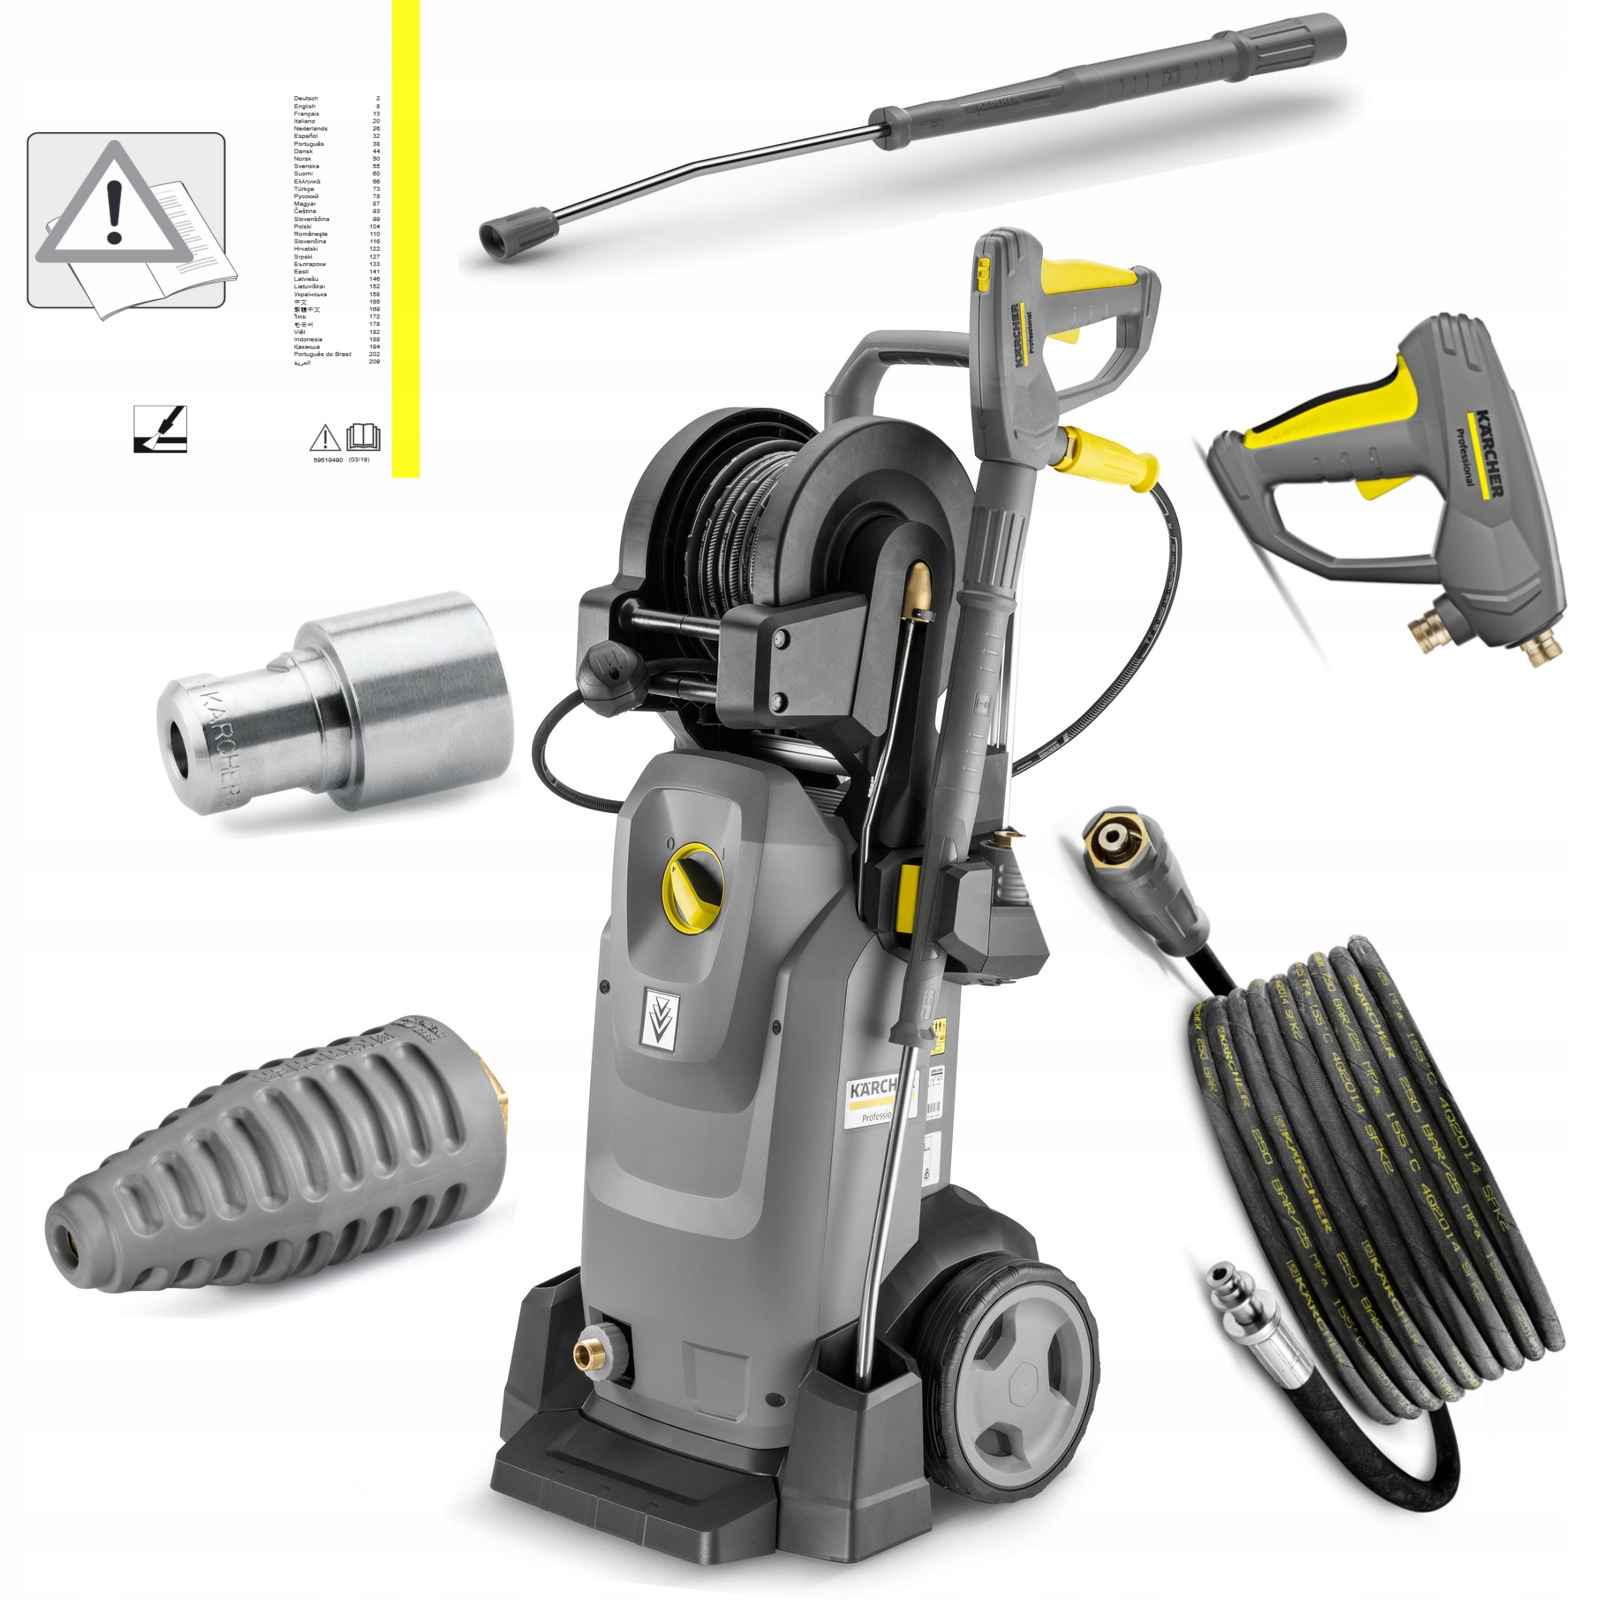 Мийка цигнениова HD 7/17 MXA Plus Karcher 255 BAR